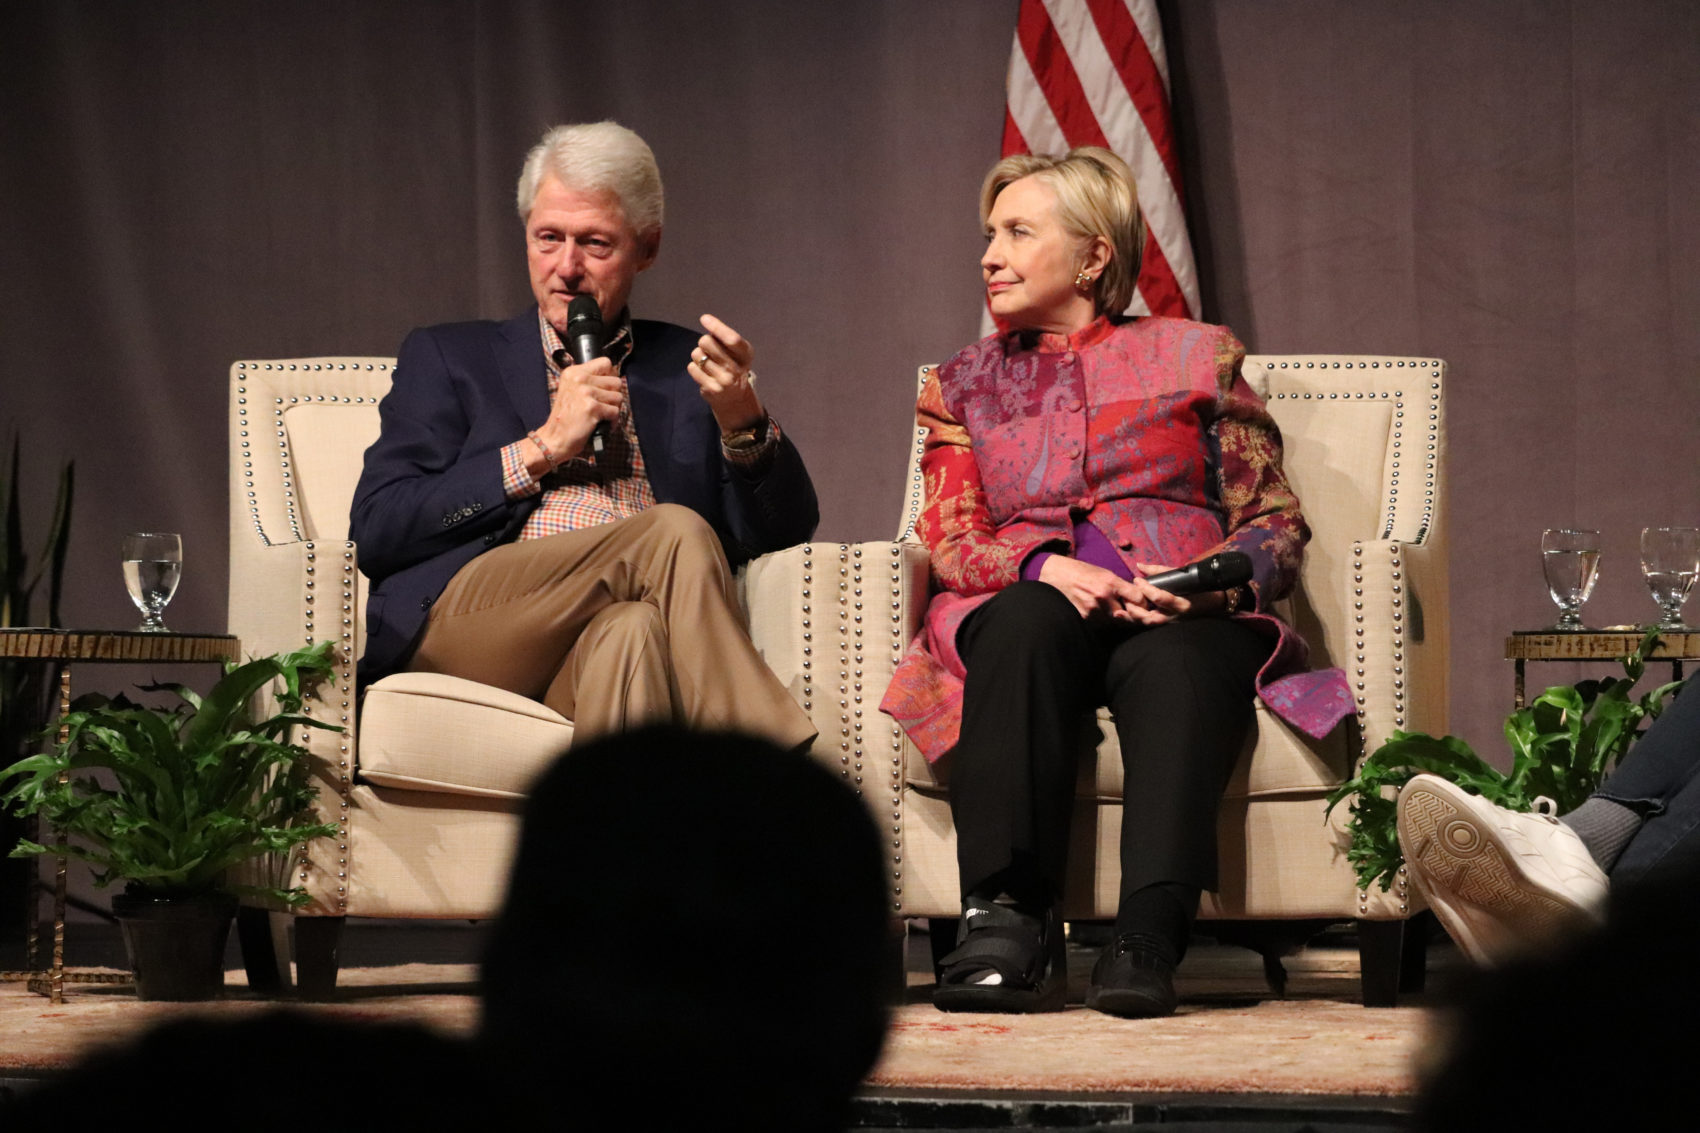 Accompanied by his wife Hillary Clinton former President Bill Clinton speaks at a gathering in Little Rock Ark. on Saturday Nov. 18 2017 marking 25 years since his election